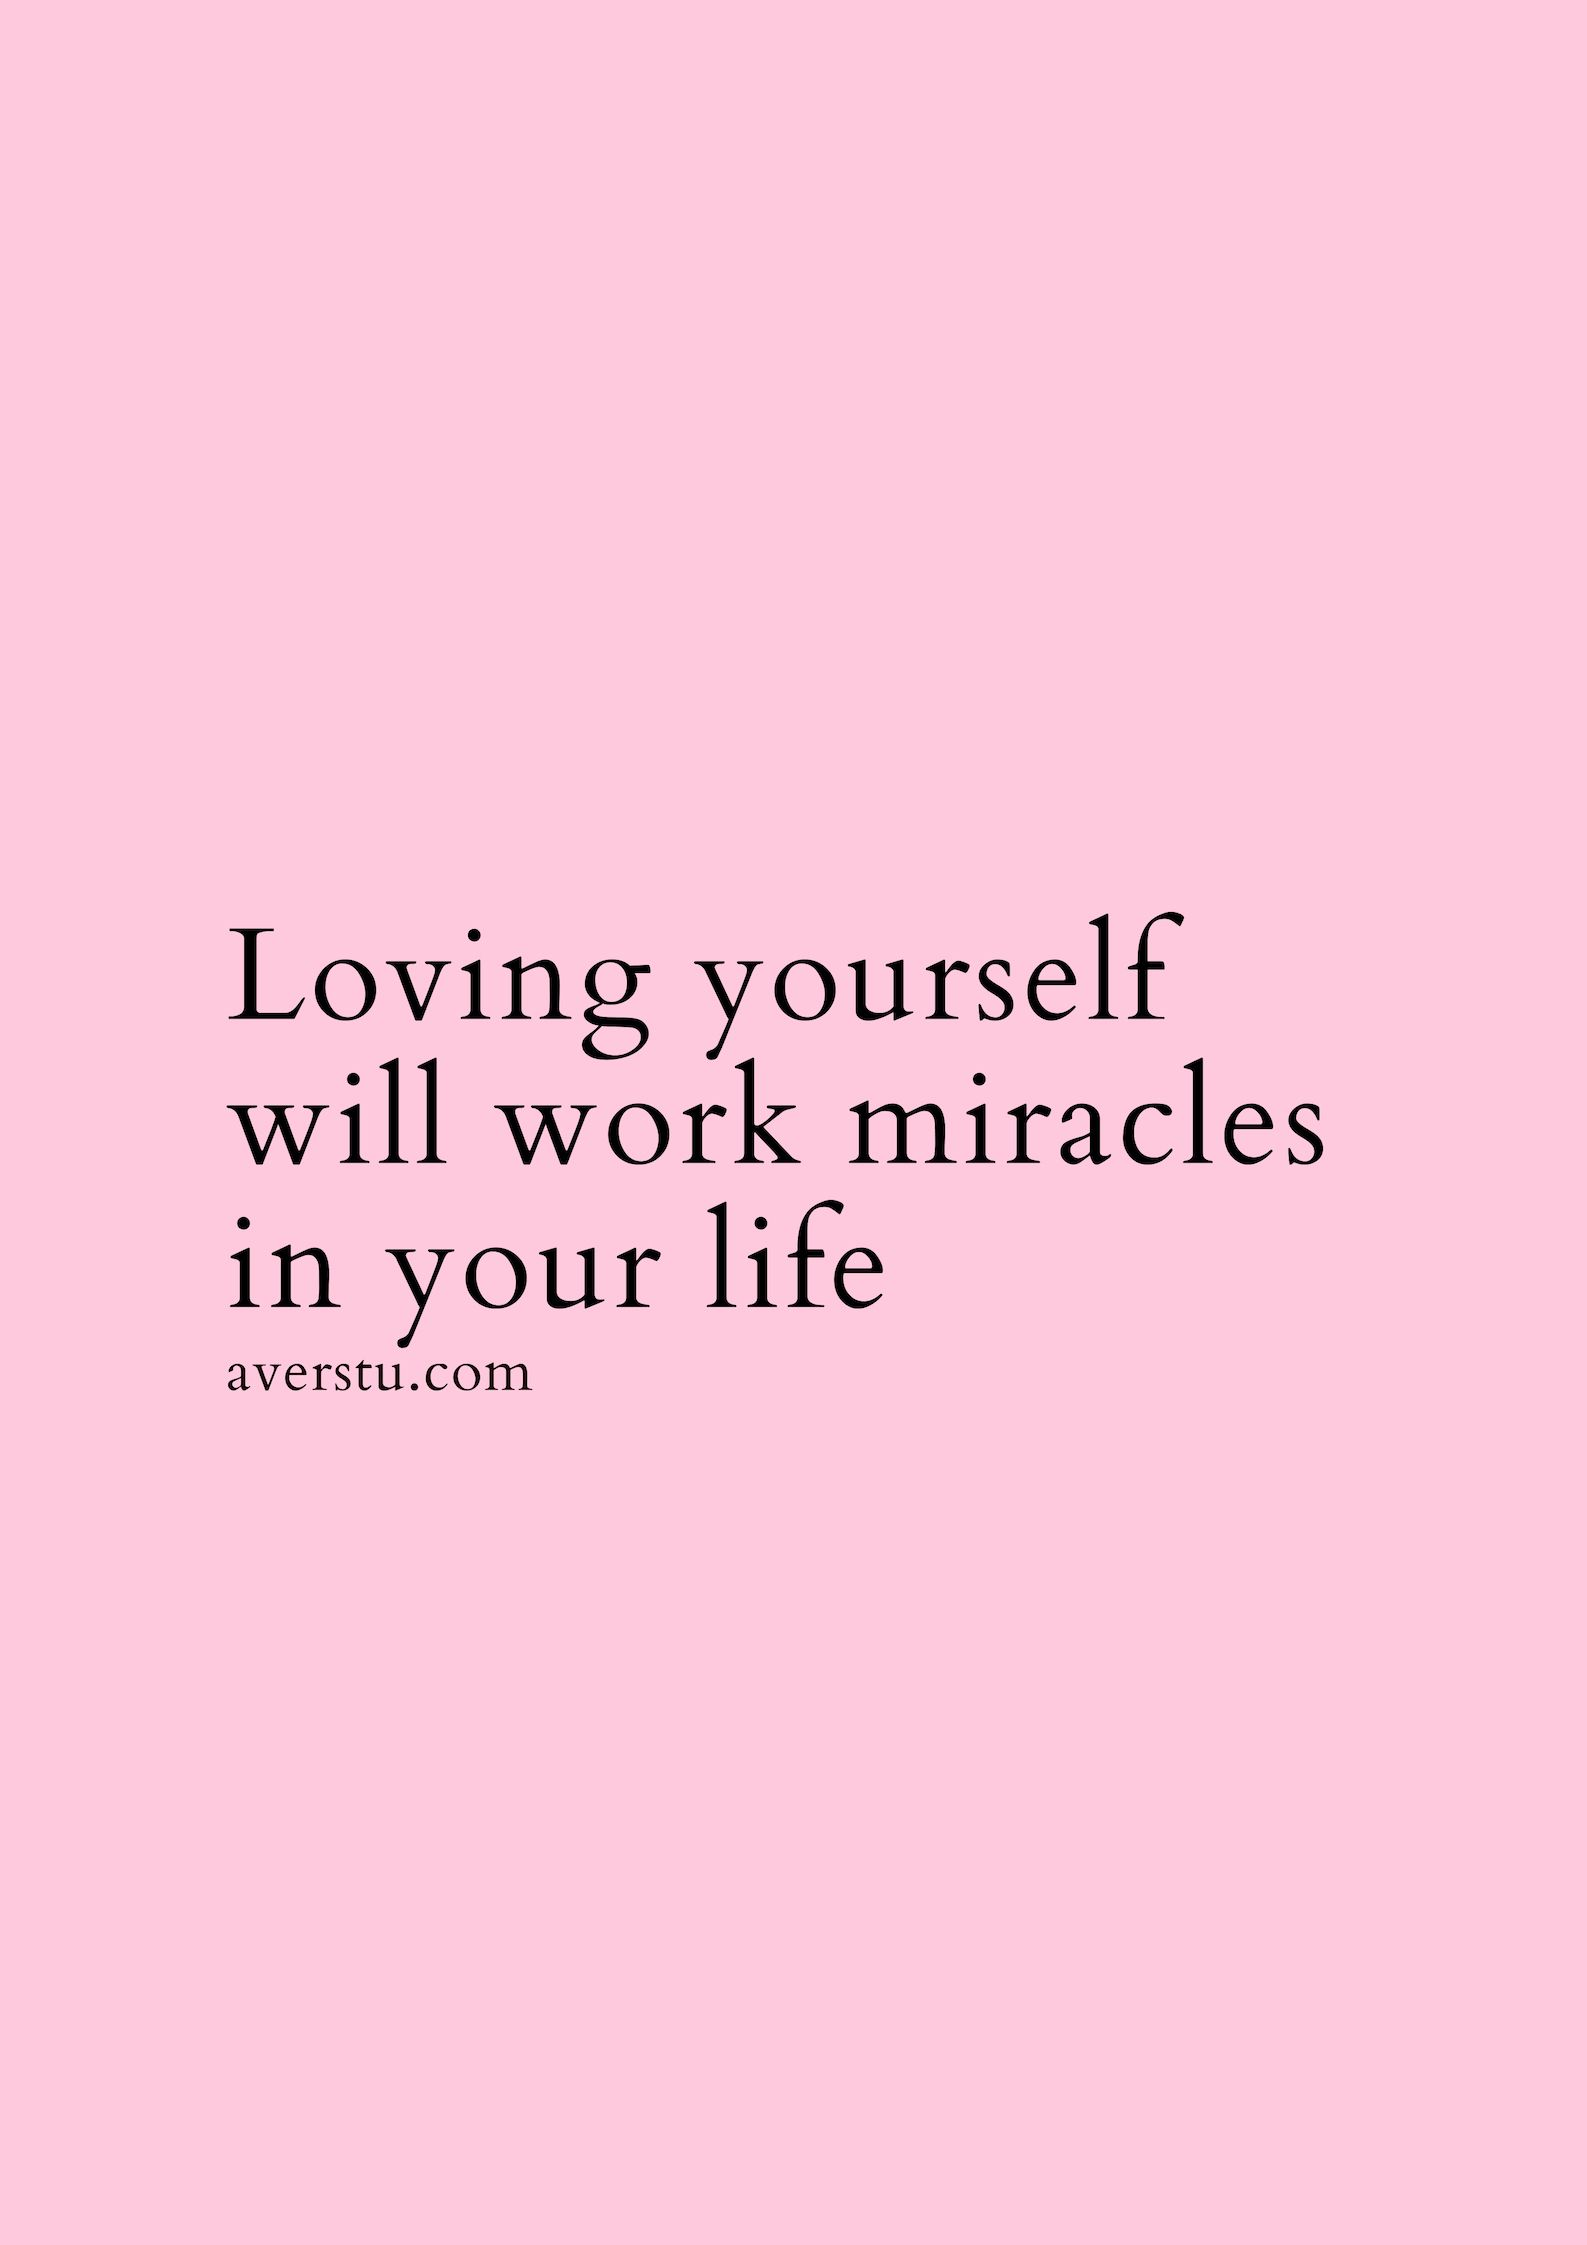 20 Top Self Love Quotes To Always Remember Part 20   The ...